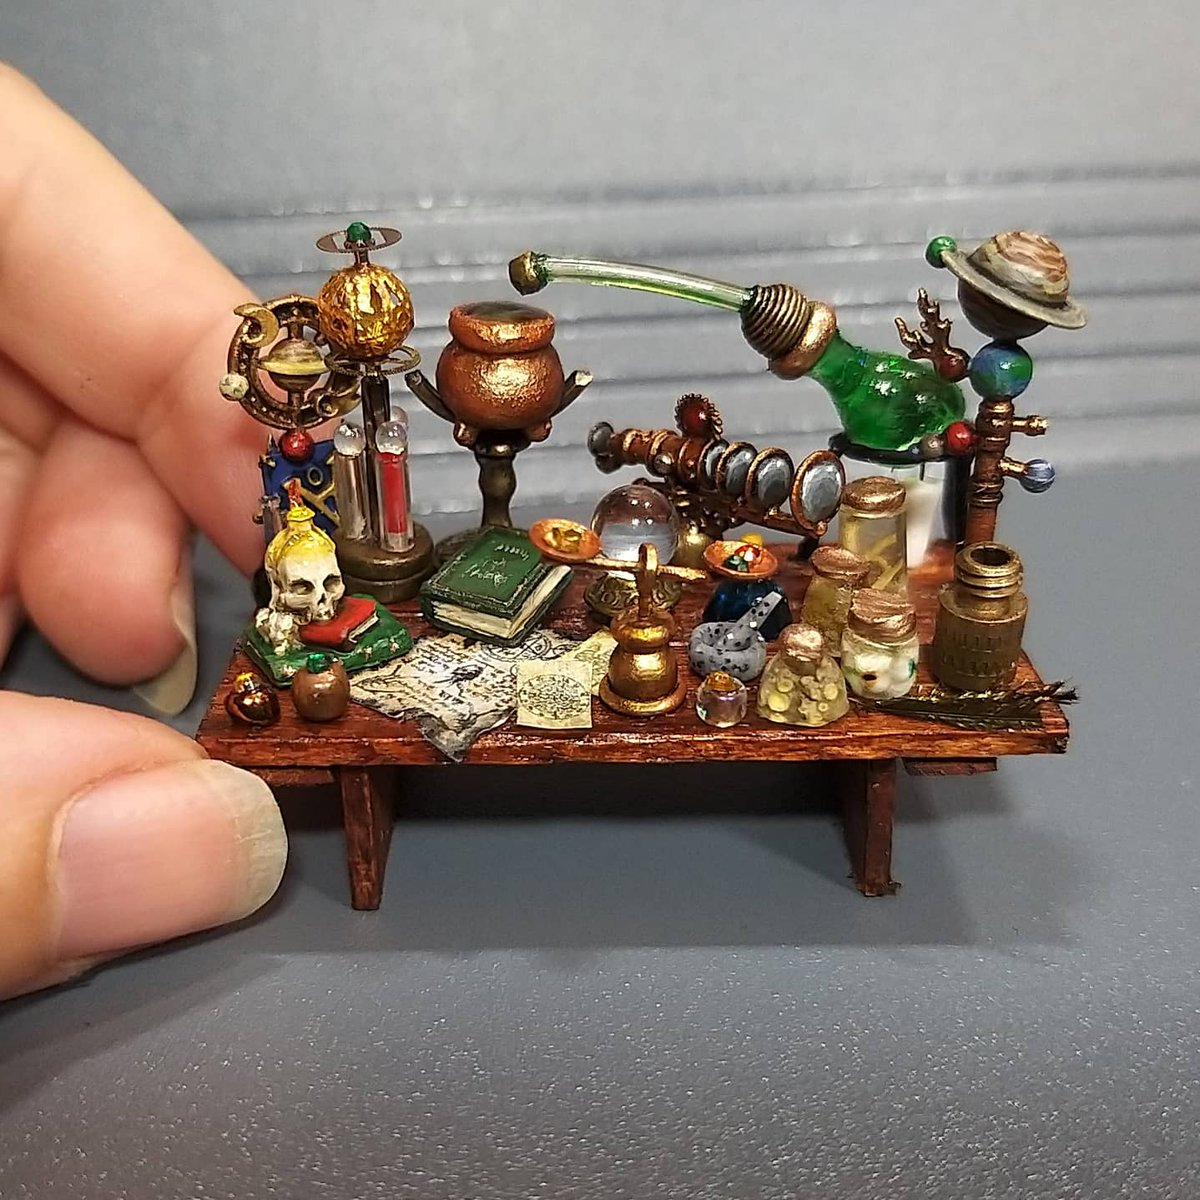 I'm gonna pull my socks up and stream making mini Alchemy things tomorrow after dinner (7pm gmt onwards) gotta get afiliate to unlock stream stuff. Come chat & ask crafting questions 🙂 https://t.co/bLiV5ZWNmn #Dnd #dnd5e #Alchemy #miniature #ttrpg #stream #twitch #pathfinder https://t.co/dlgAaPmIIG